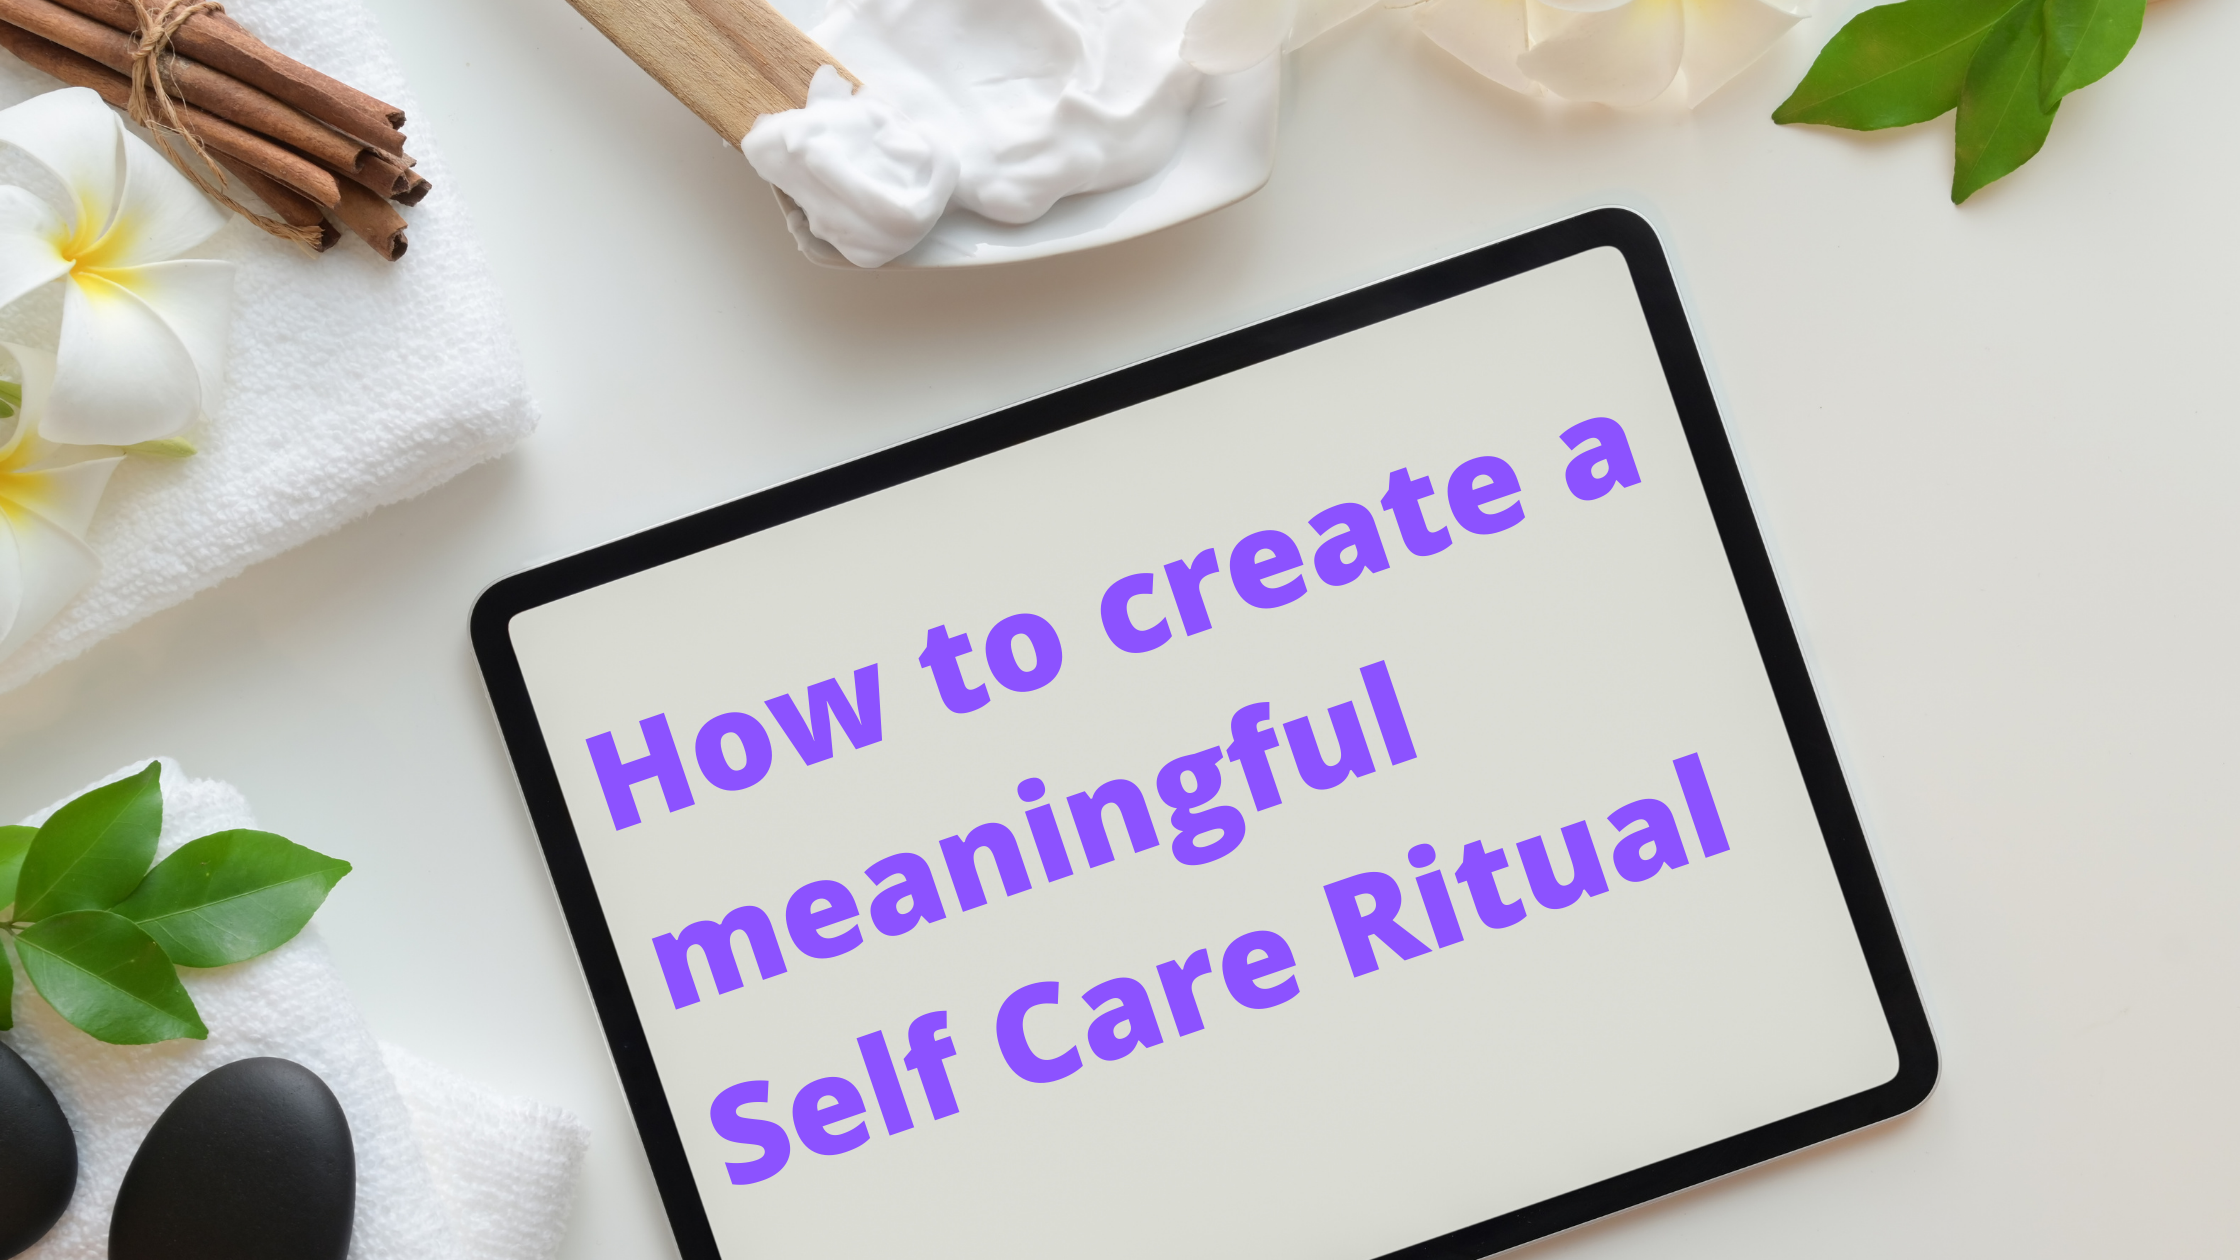 how to create a meaningful self care ritual